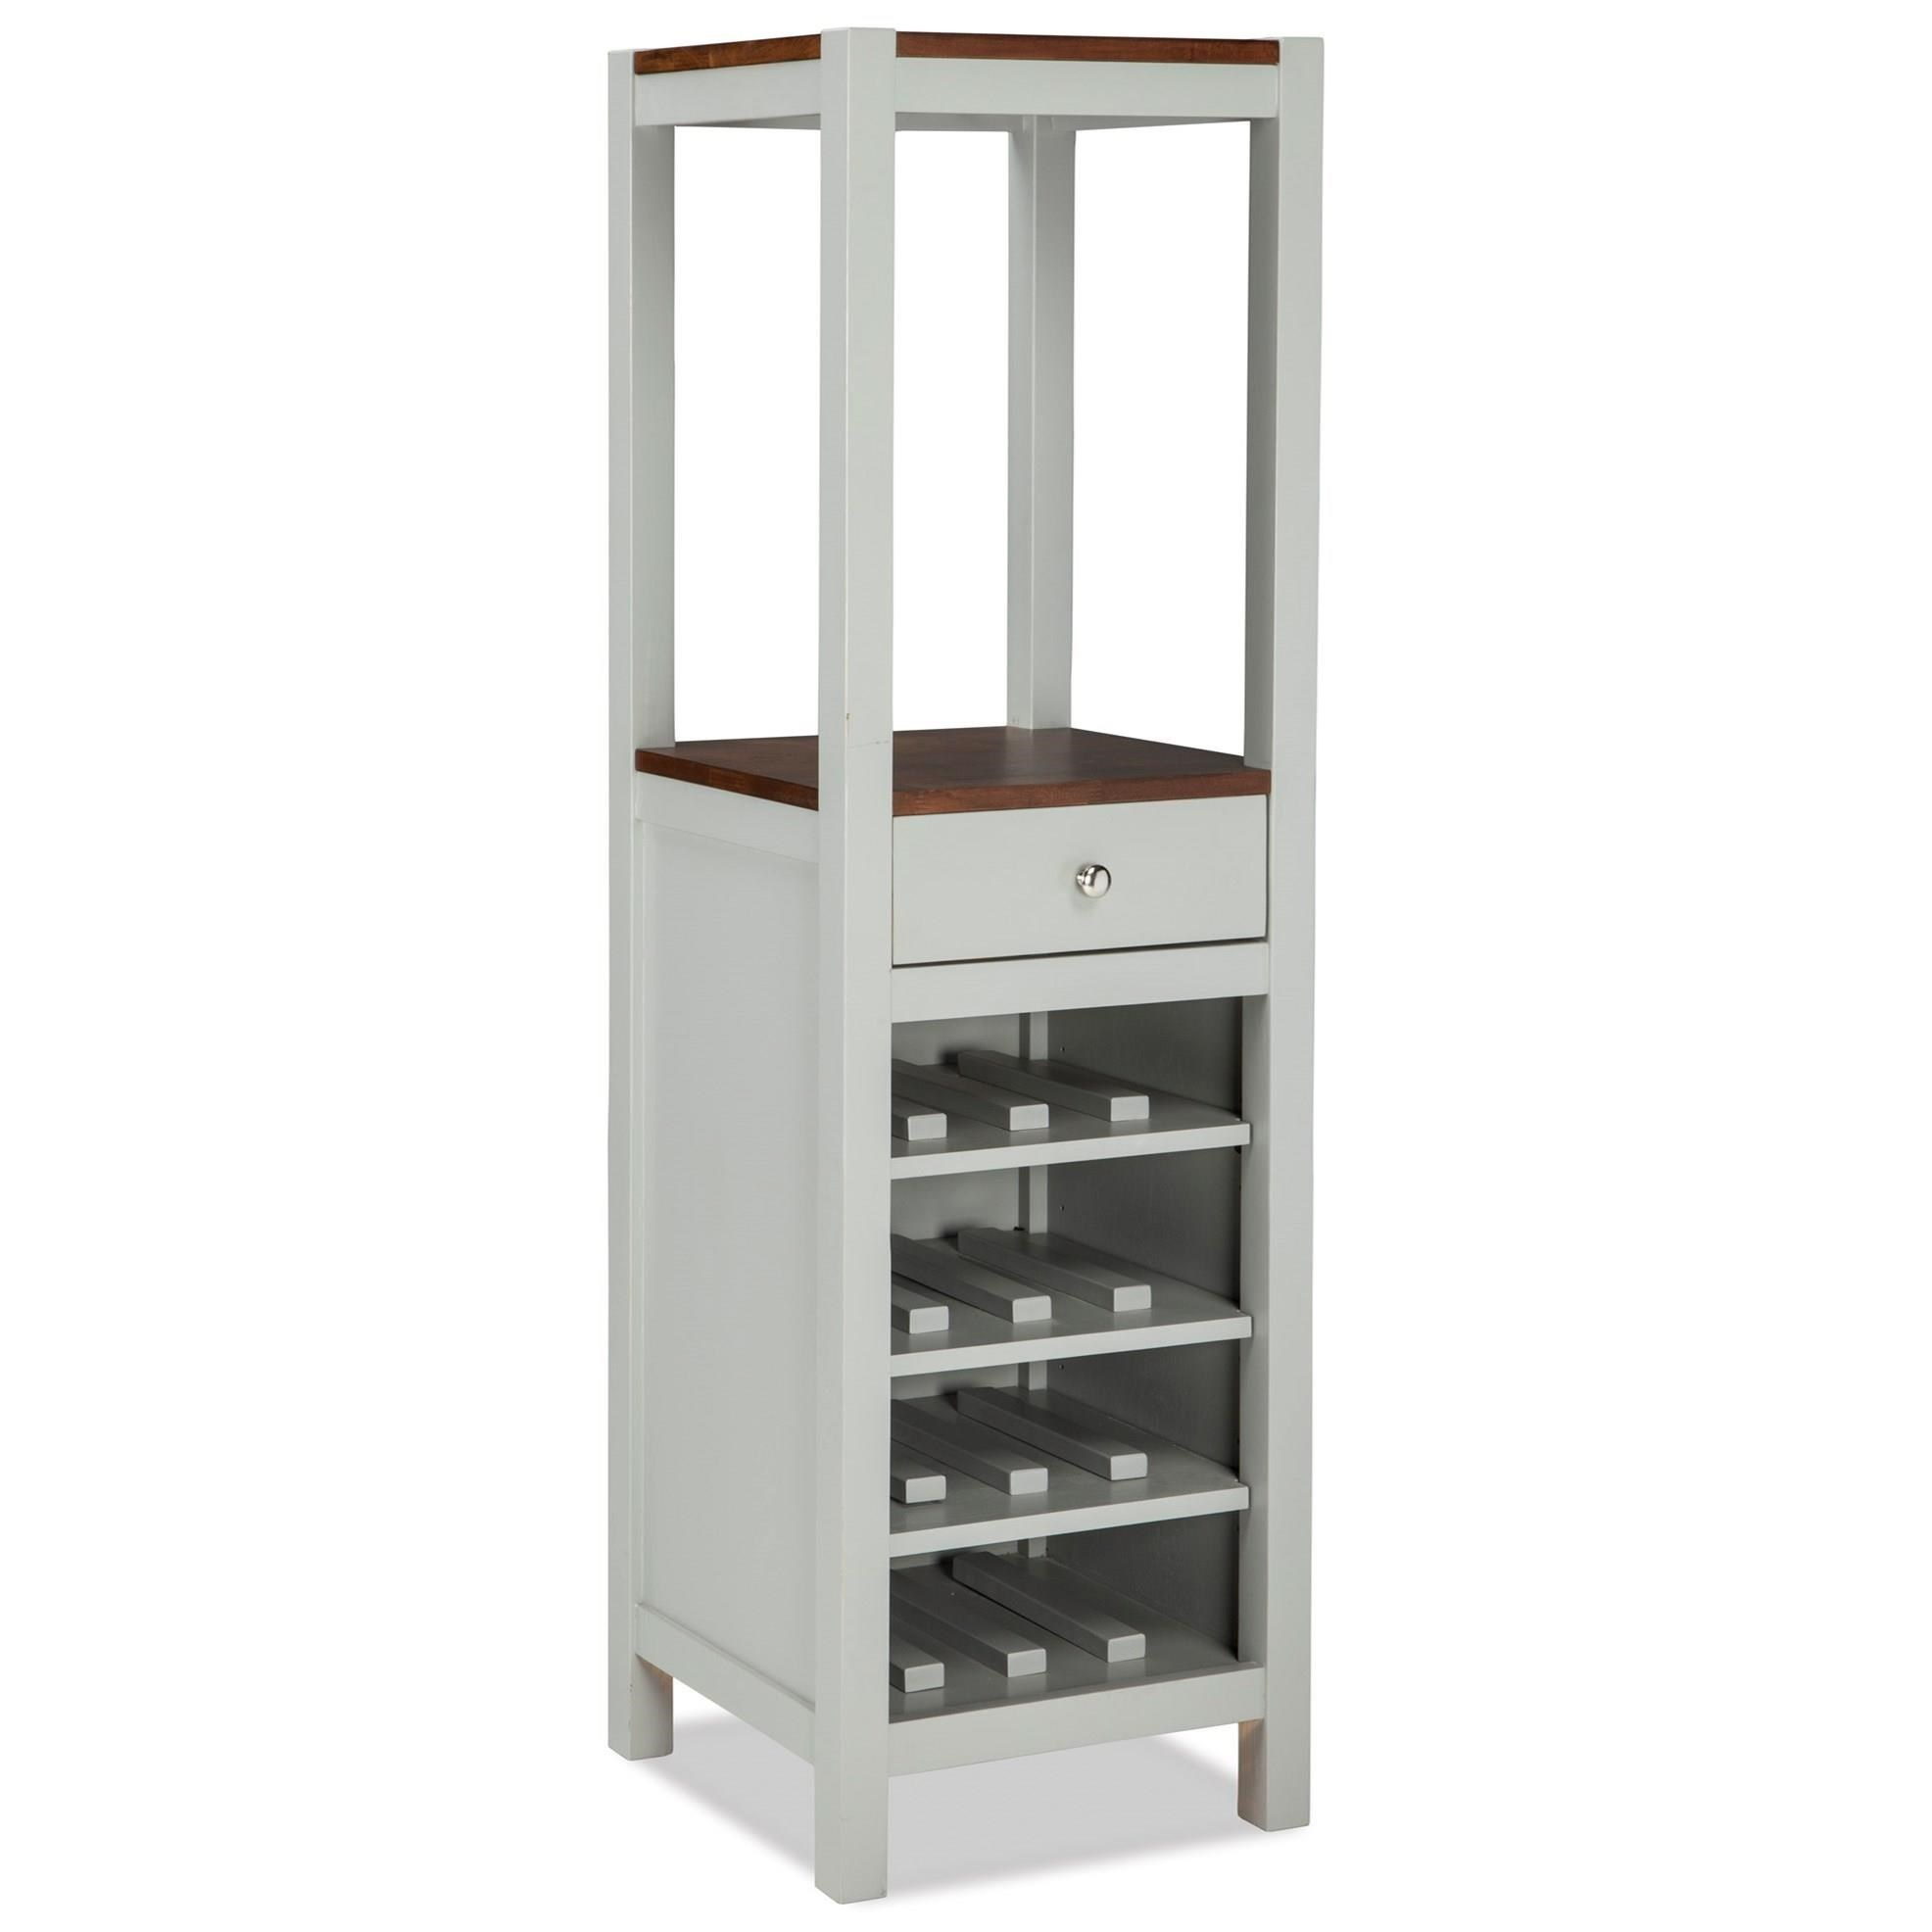 Small Wine Storage Cabinets Intercon Small Space Vertical Wine And Dining Storage